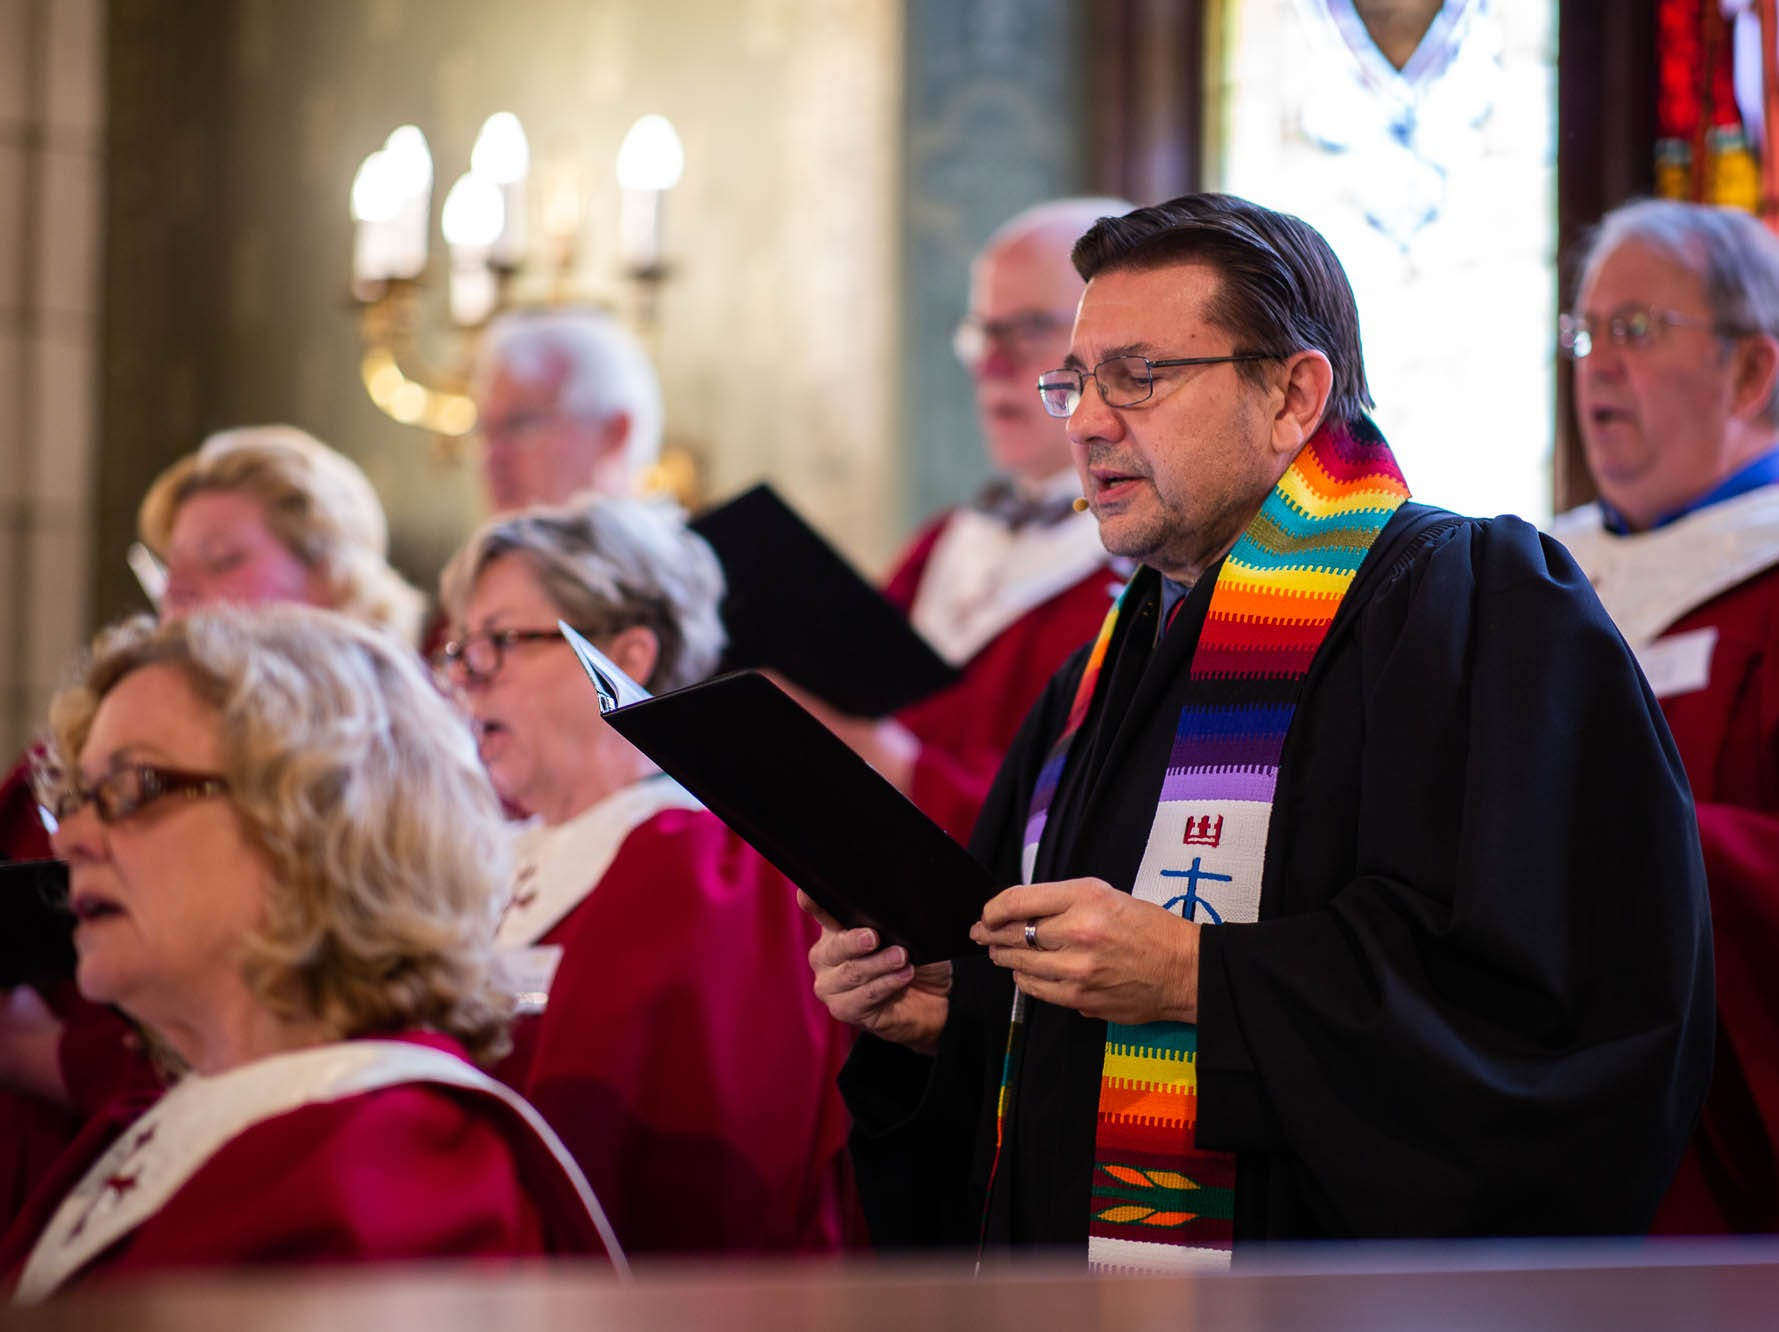 Reverend Russell Clark sings in the choir during a diversity service at the Emmanuel United Church of Christ, Sunday, April 7, 2019, in Hanover. Reverend Clark is the first openly gay pastor at the church.